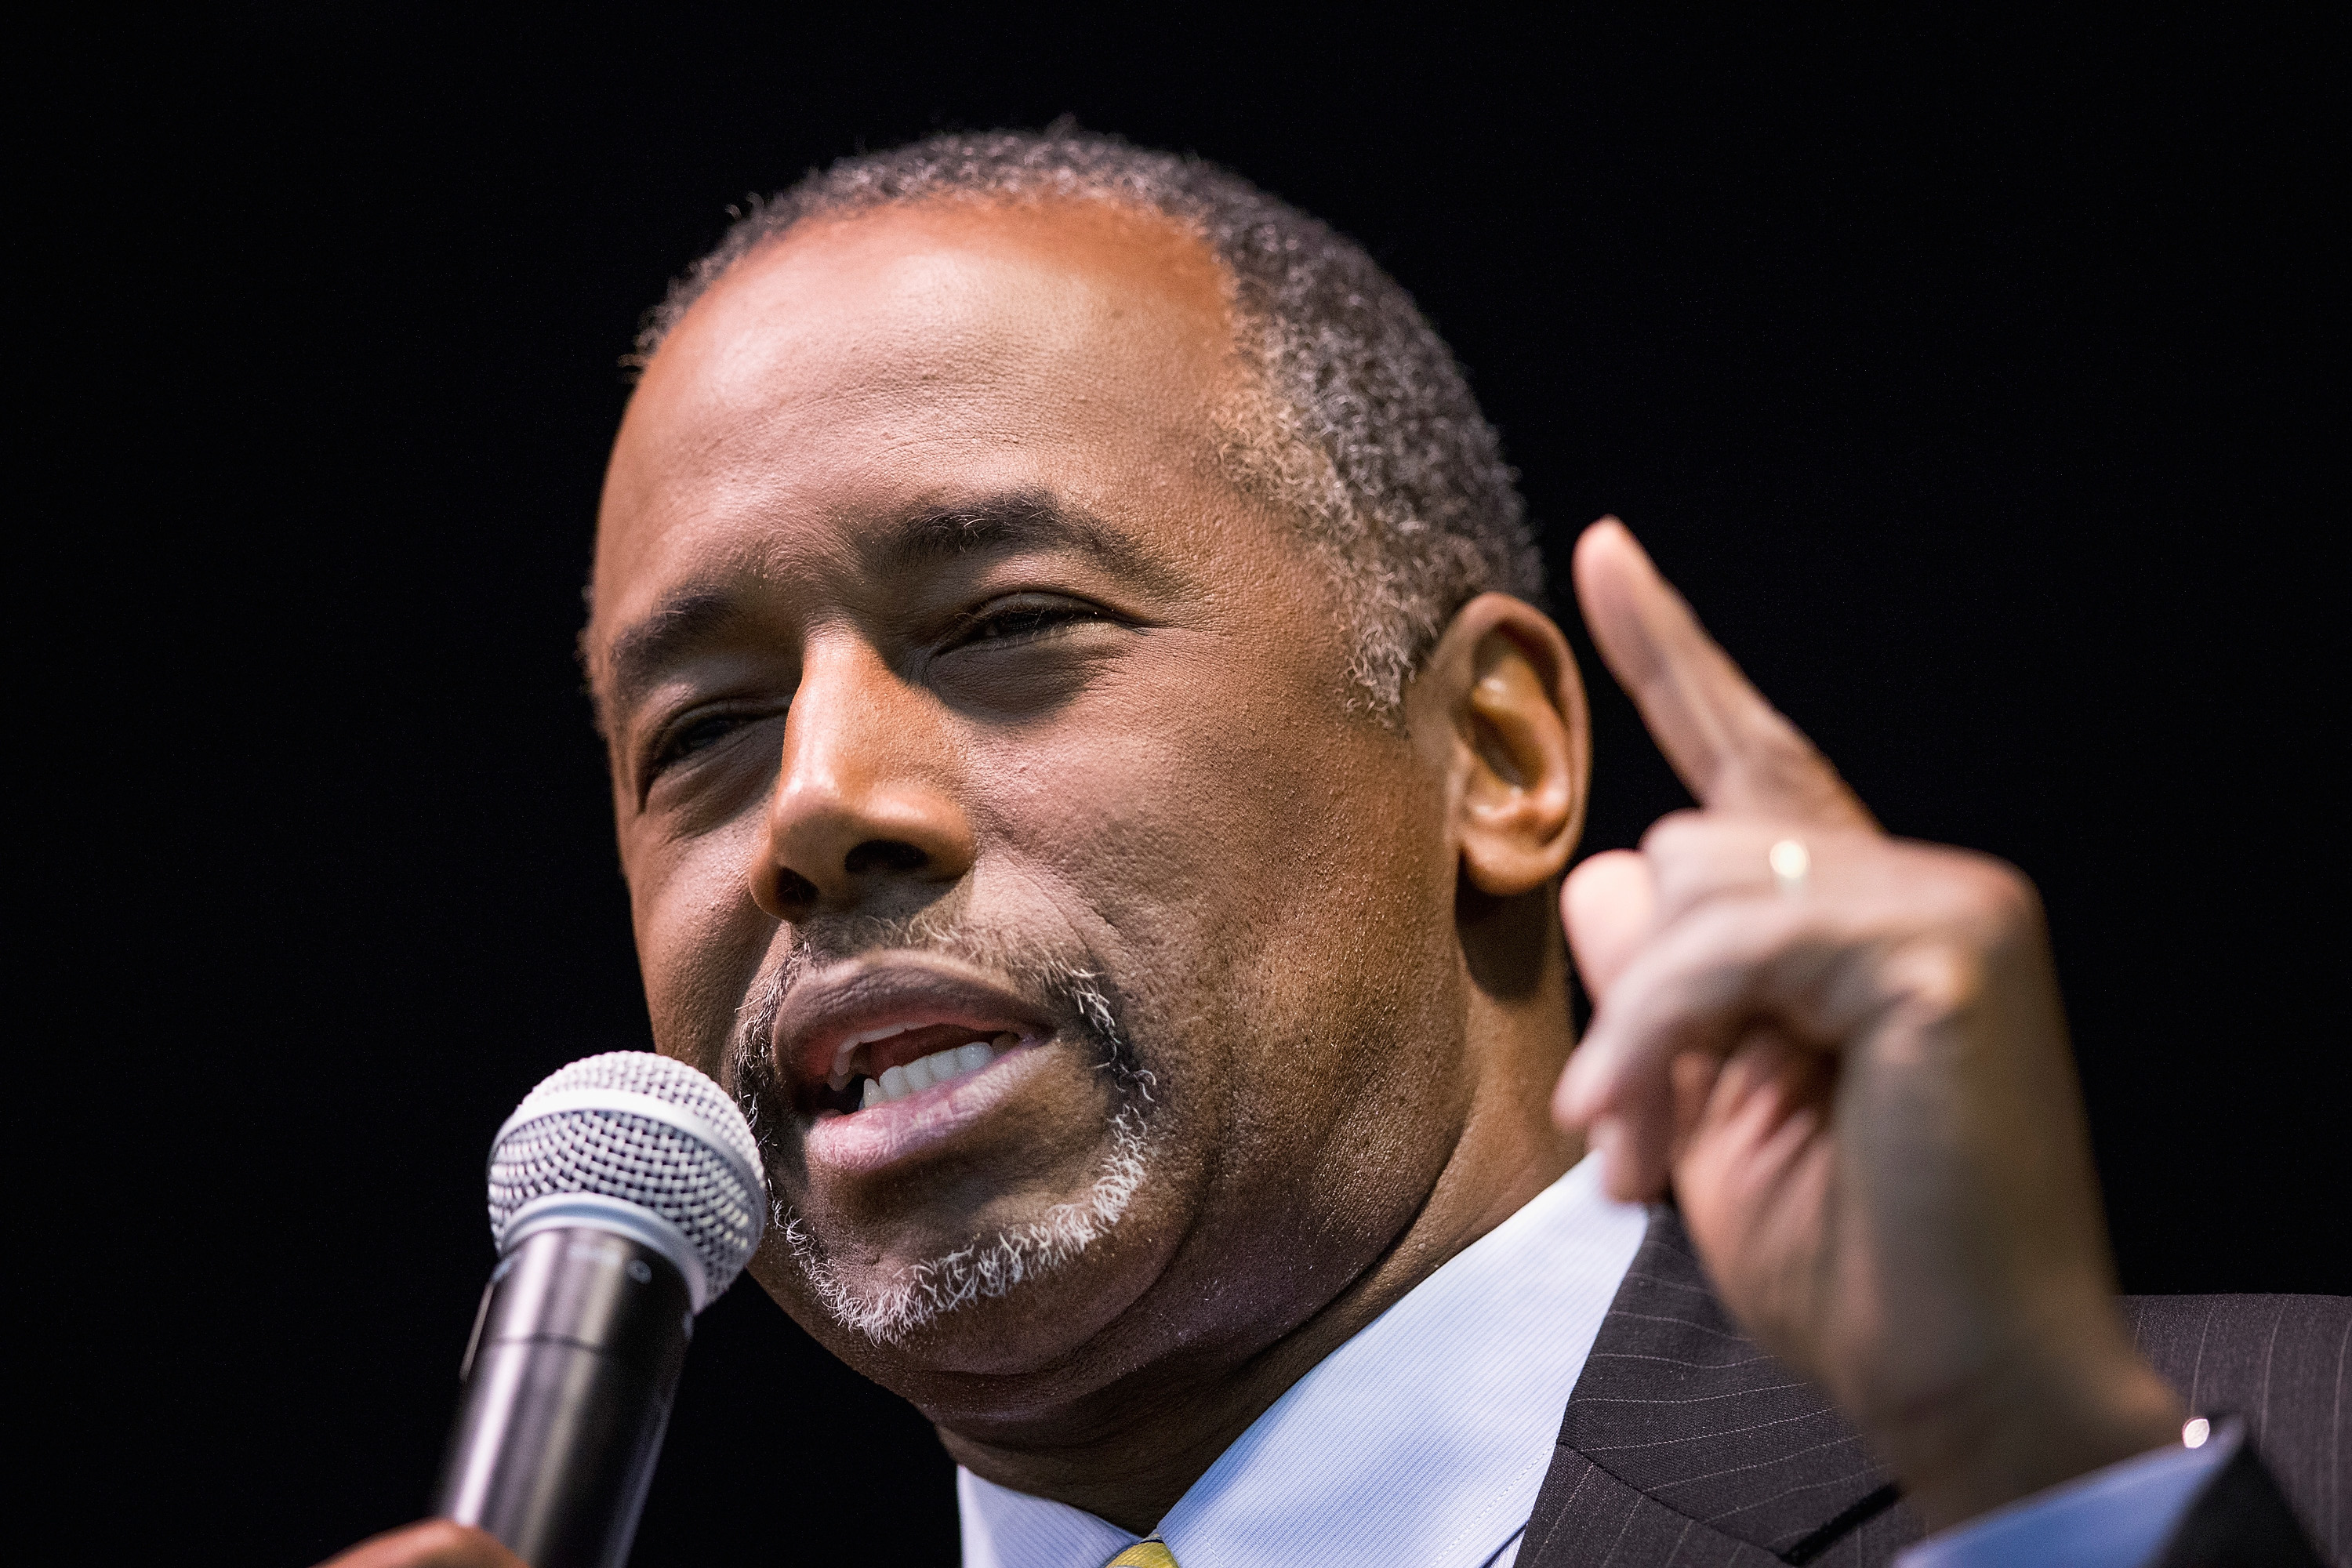 Ben Carson speaks to guests at a barbeque hosted by Jeff Kauffman, chairman of the Republican party of Iowa in Wilton, Iowa on Nov. 22, 2015.